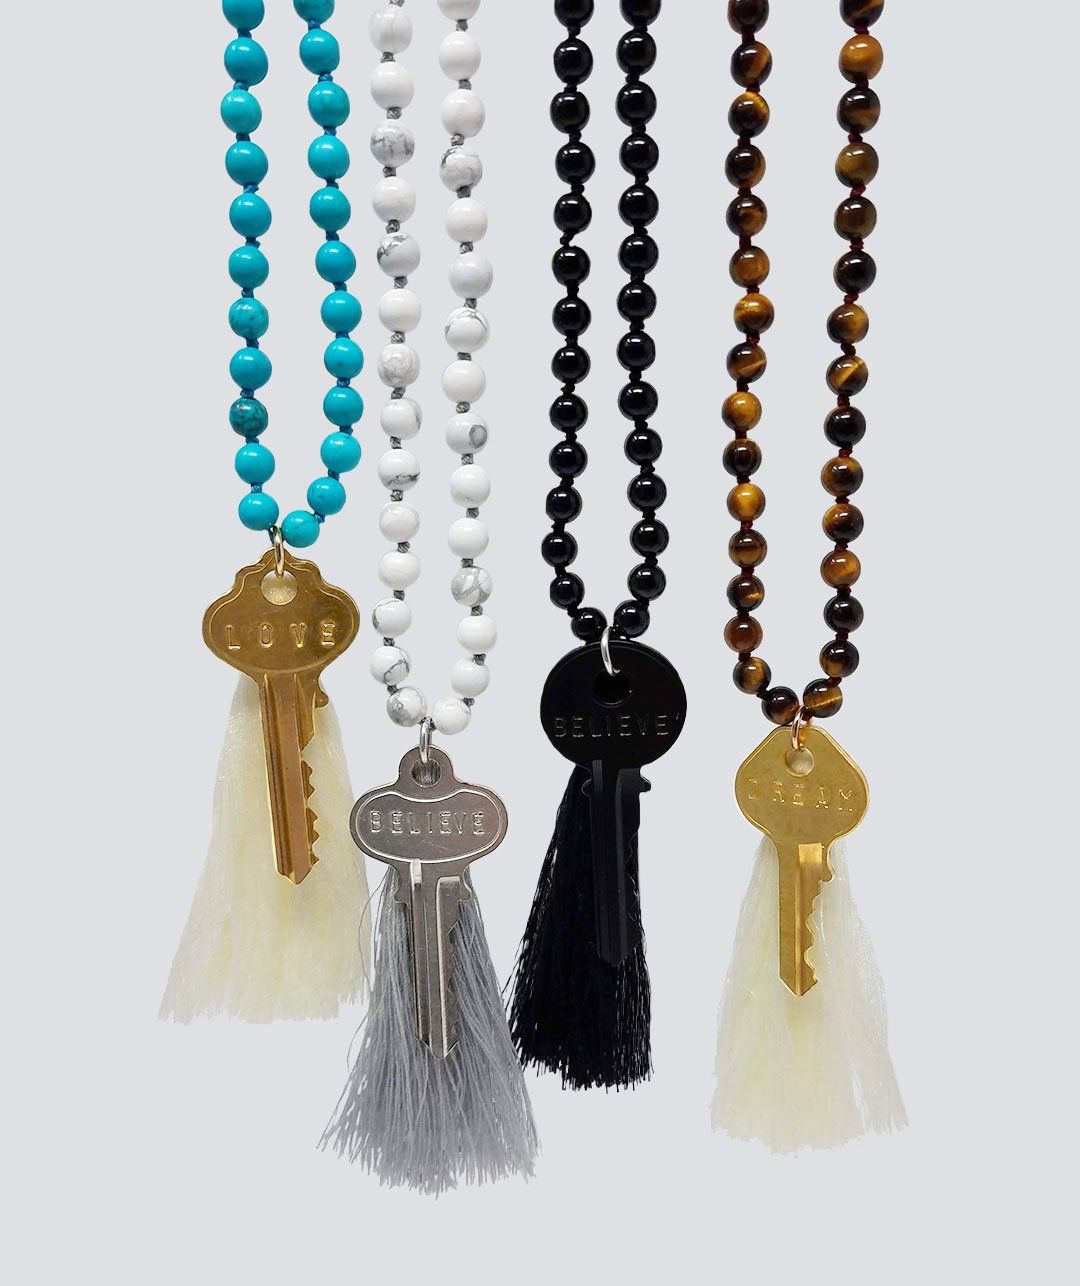 Cream Tassel for Turquoise Necklace Charms The Giving Keys Cream None